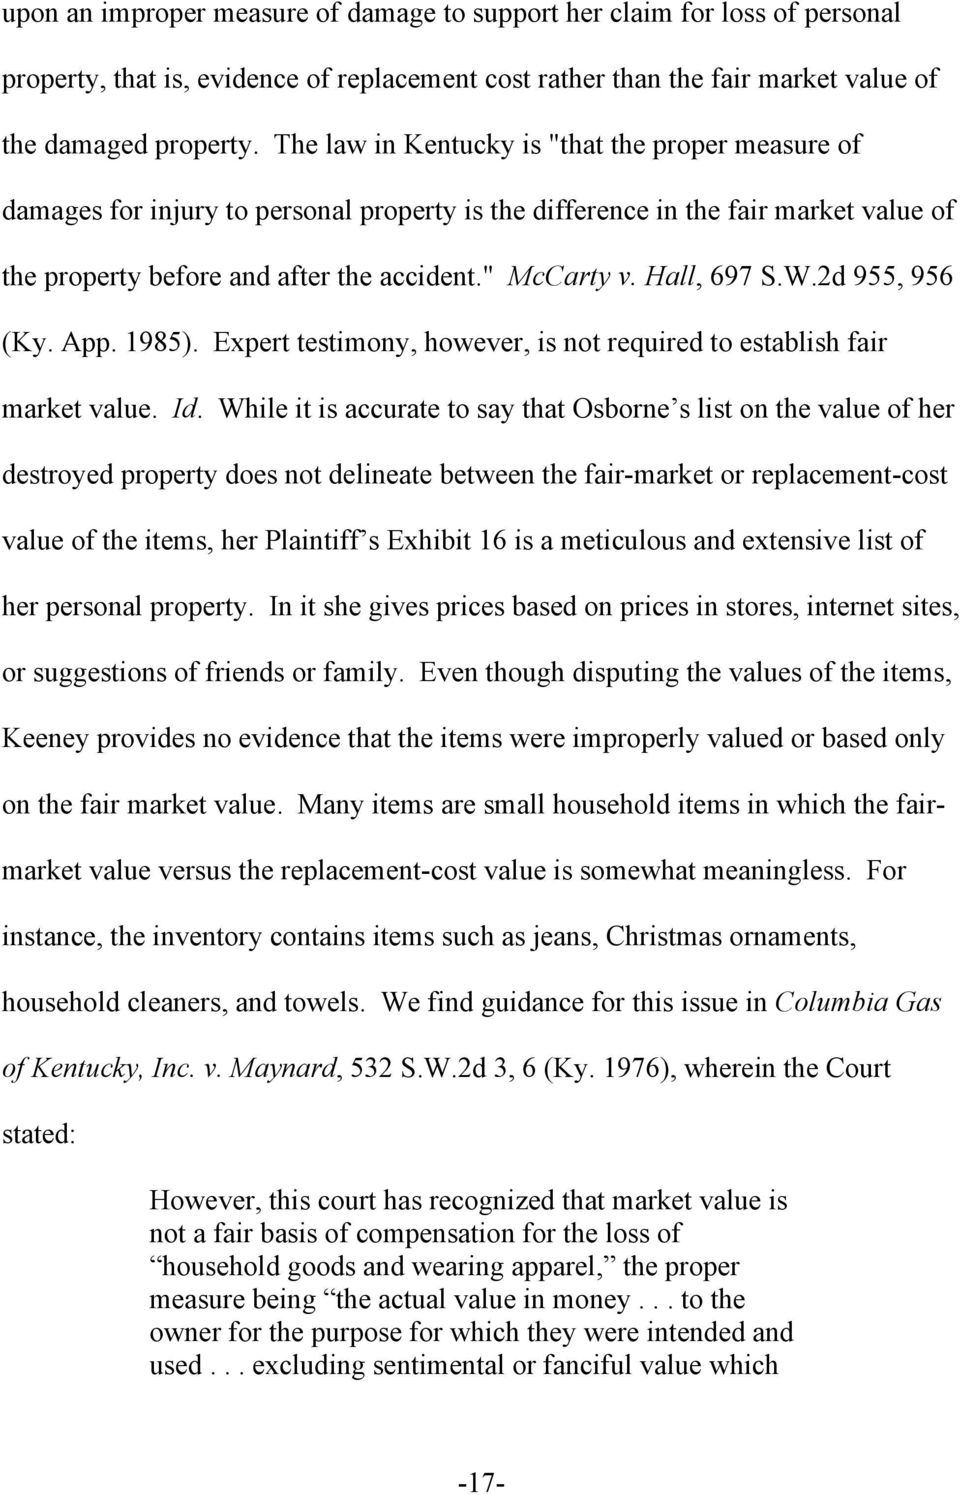 Hall, 697 S.W.2d 955, 956 (Ky. App. 1985). Expert testimony, however, is not required to establish fair market value. Id.